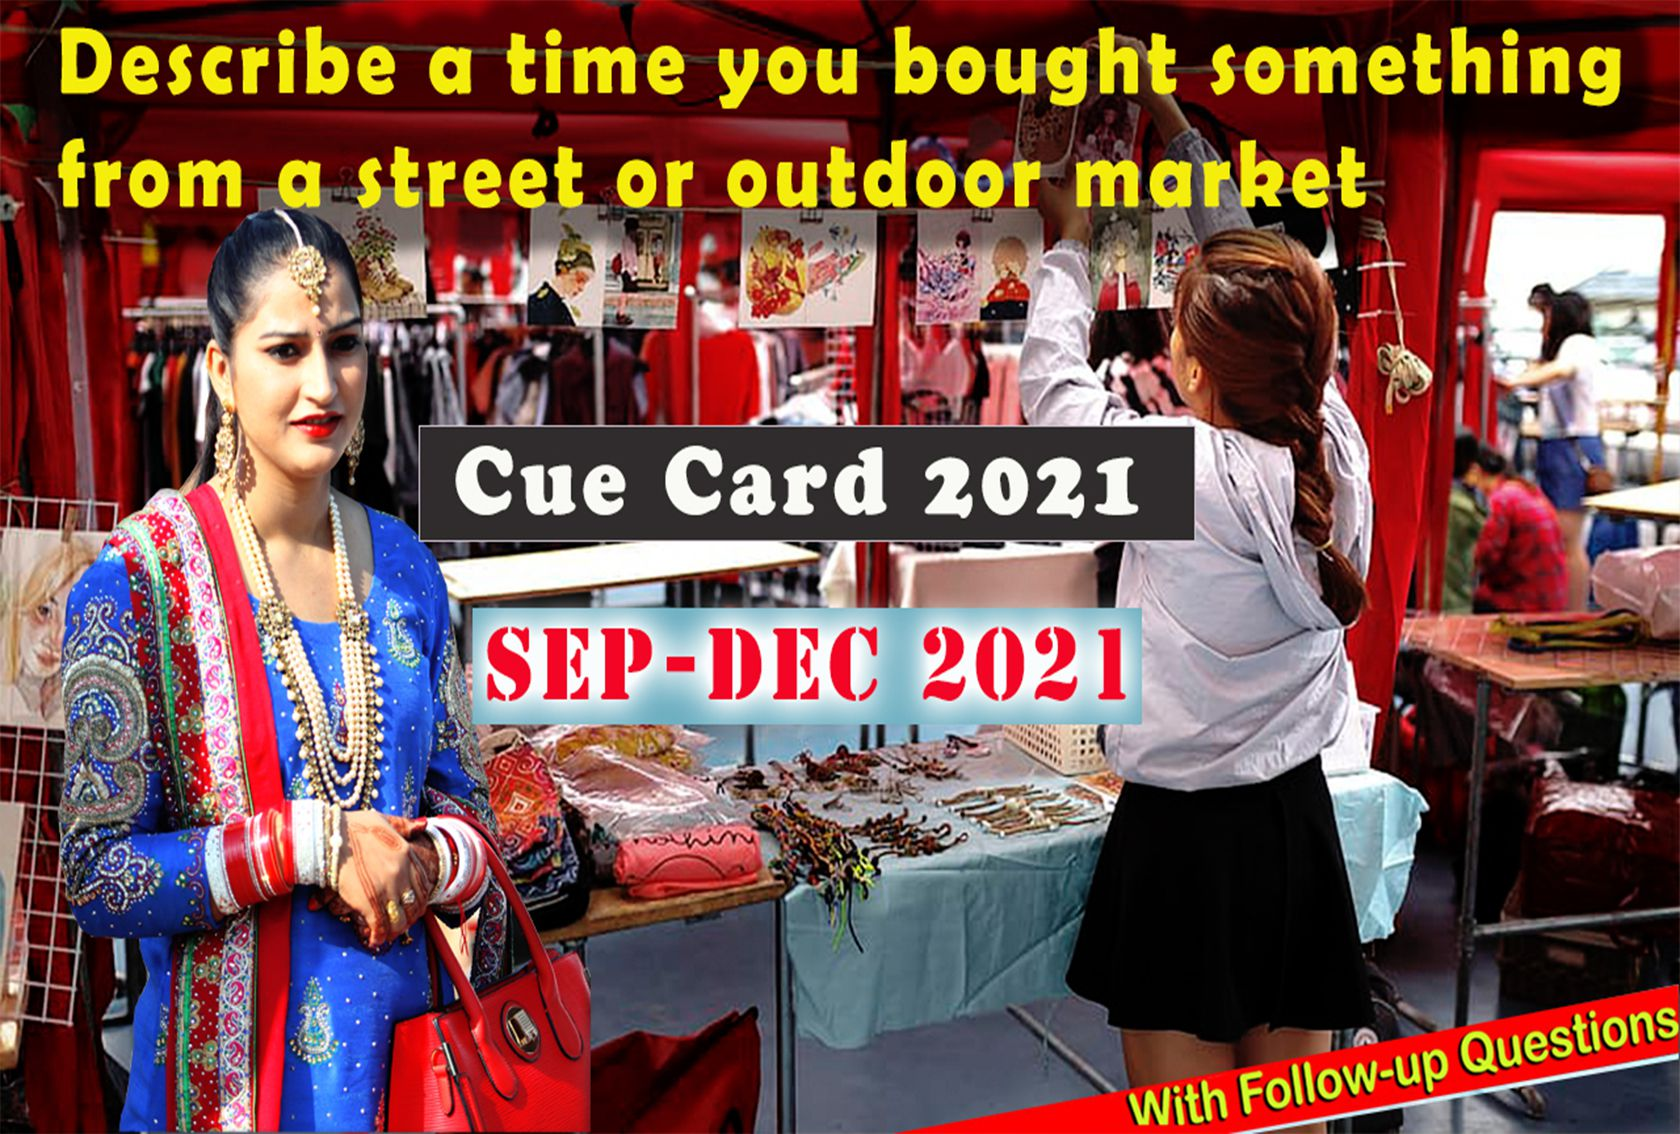 Describe a time you bought something from a street or outdoor market Cue Card